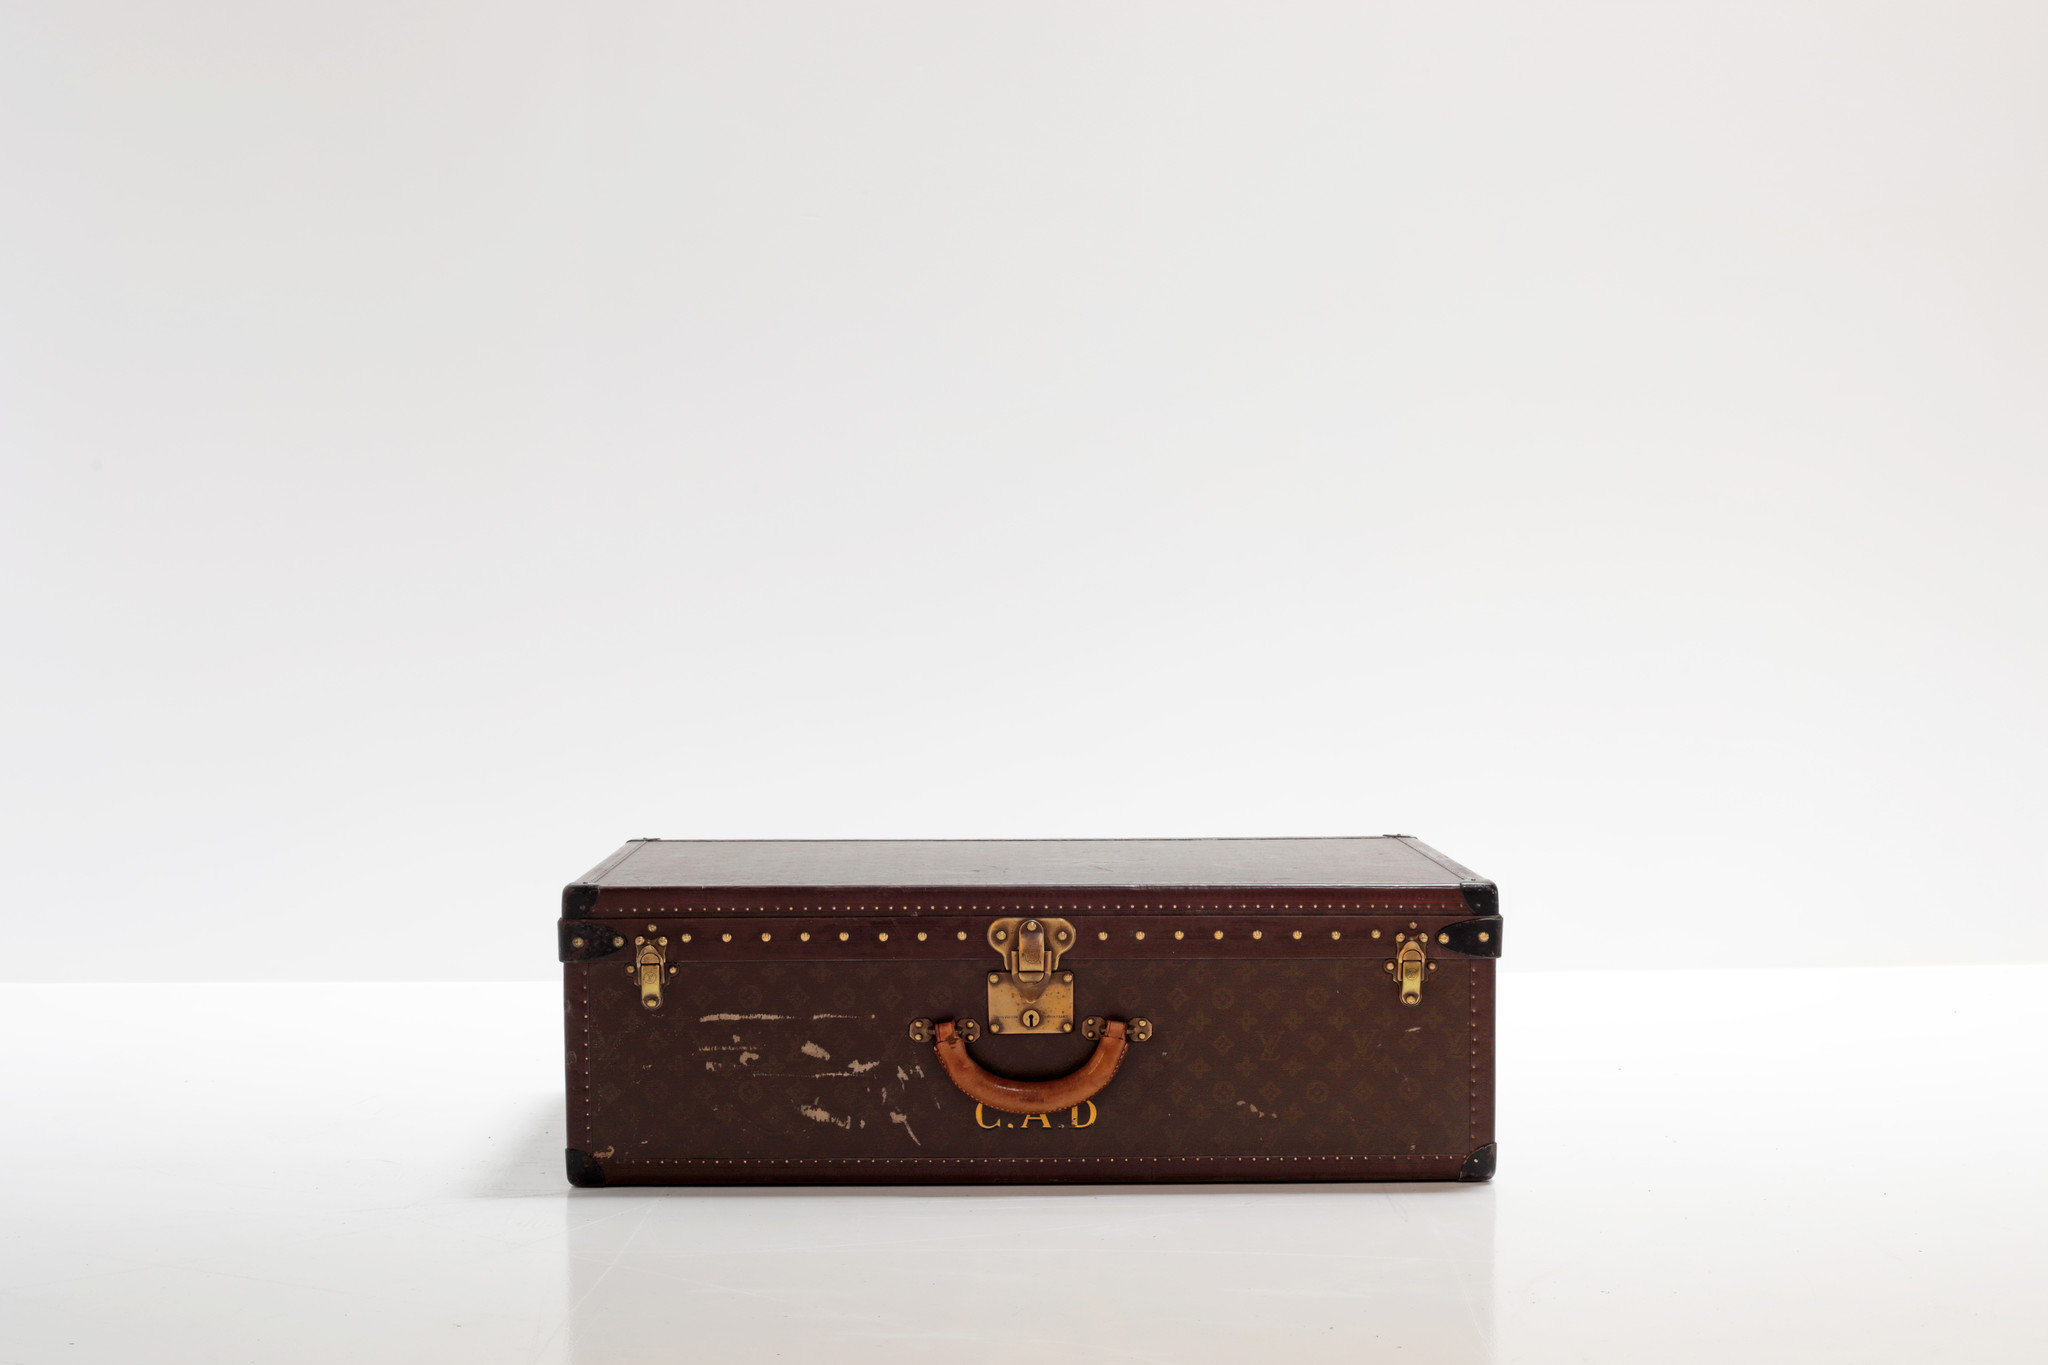 Louis Vuitton valies monogram circa 1940